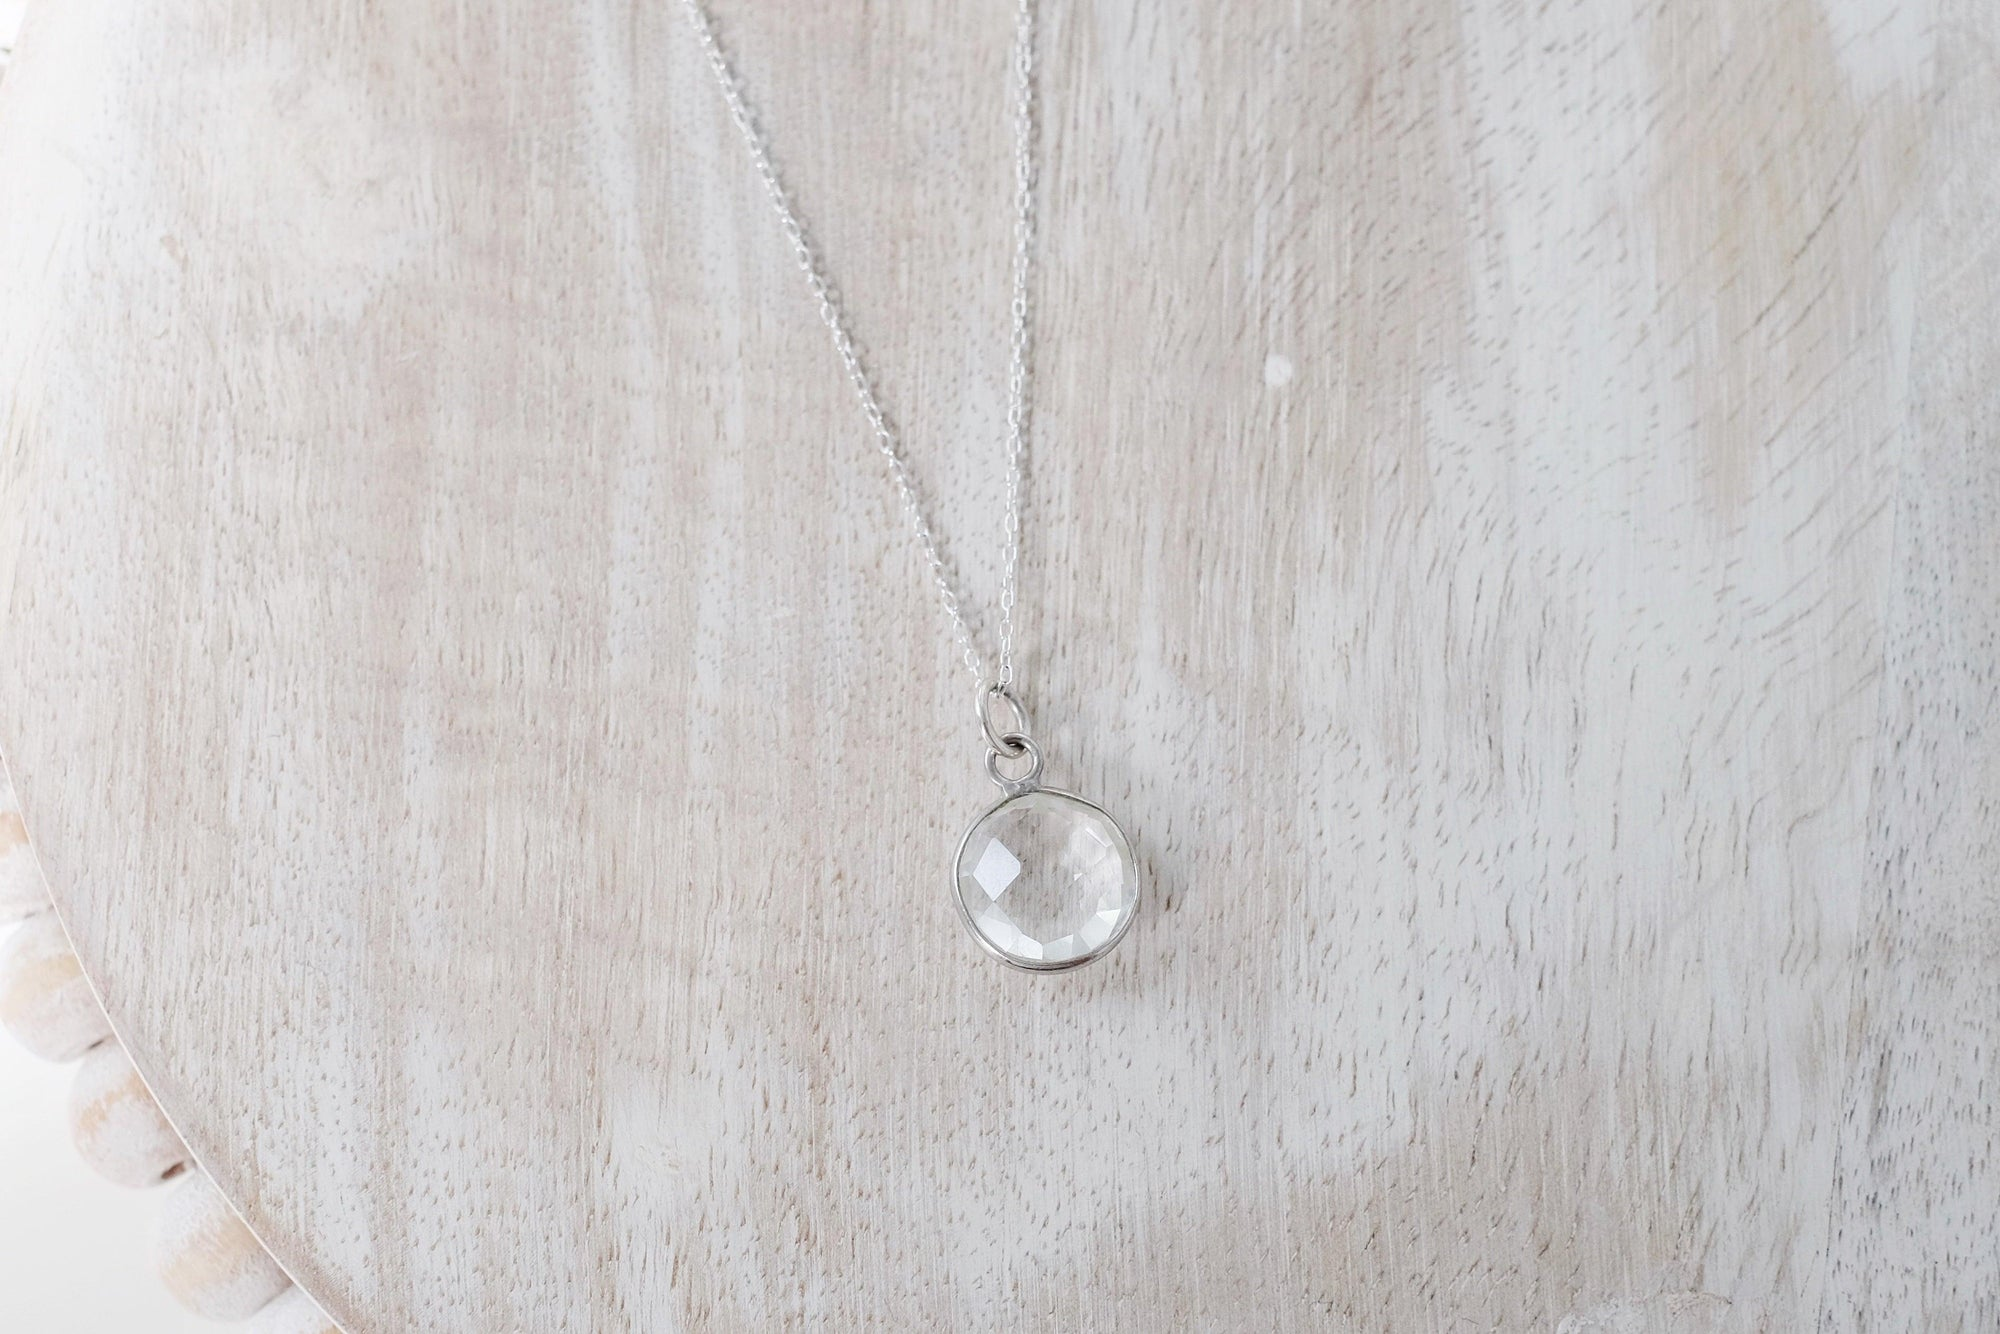 Clear Quartz Drop Necklace